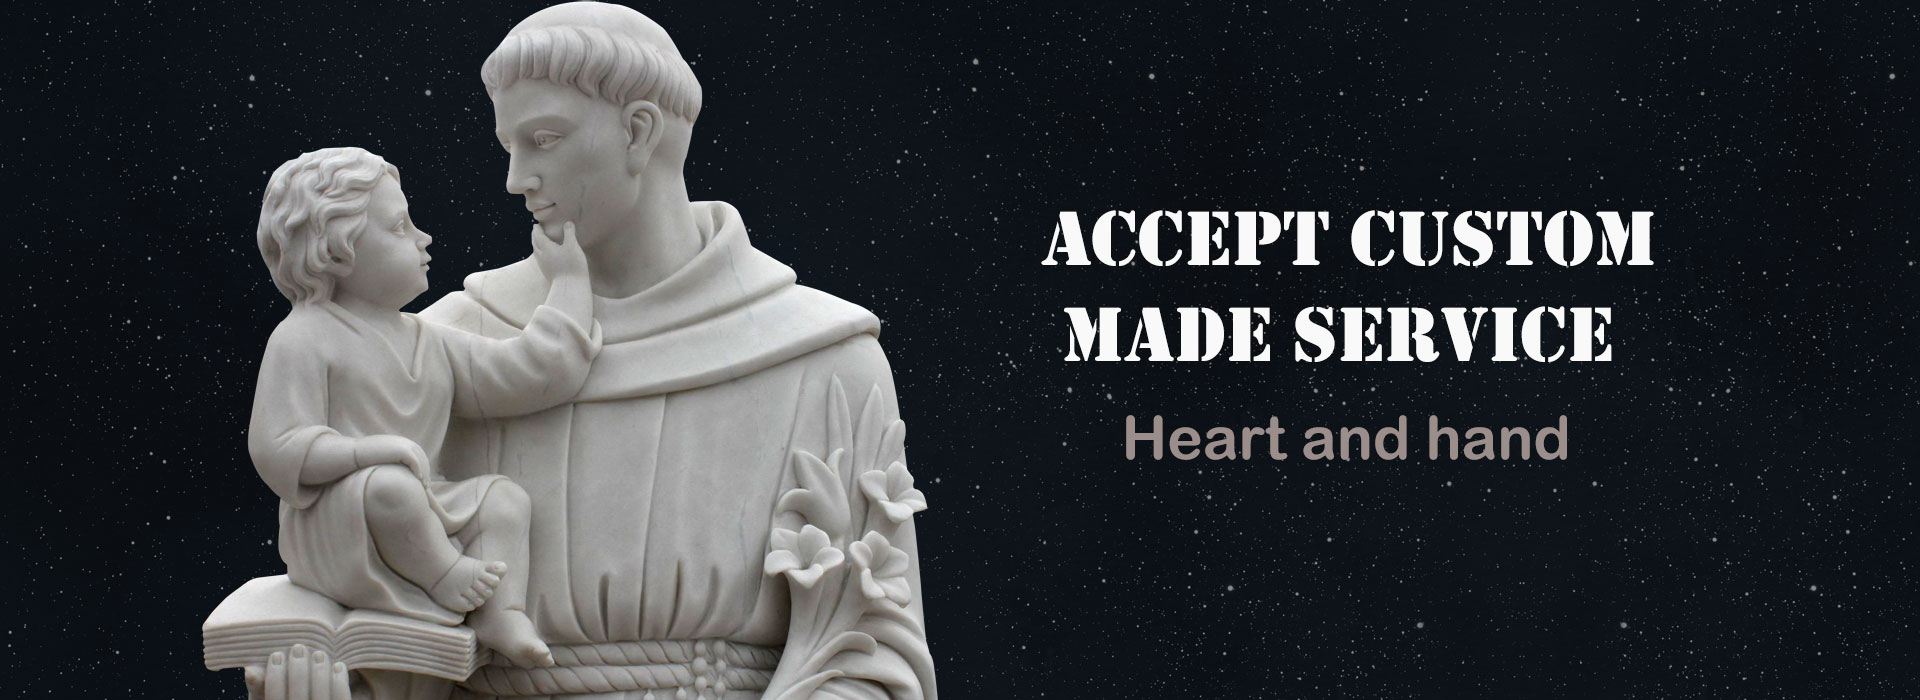 Buy Catholic statues of Jesus christ online